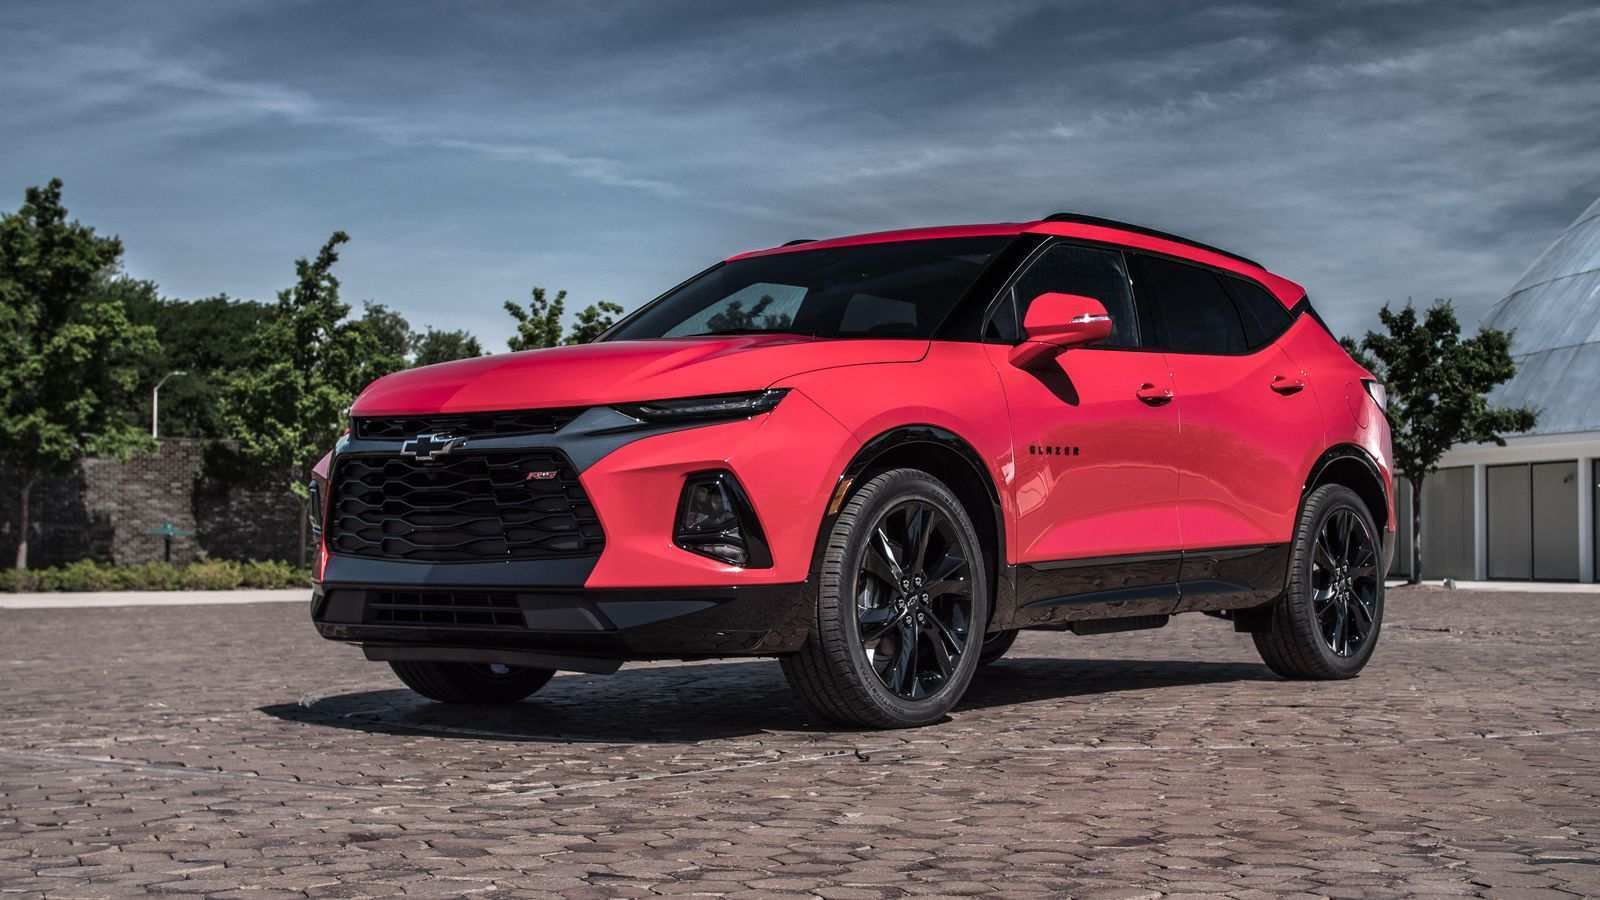 32 New 2019 Chevy K5 Blazer Price